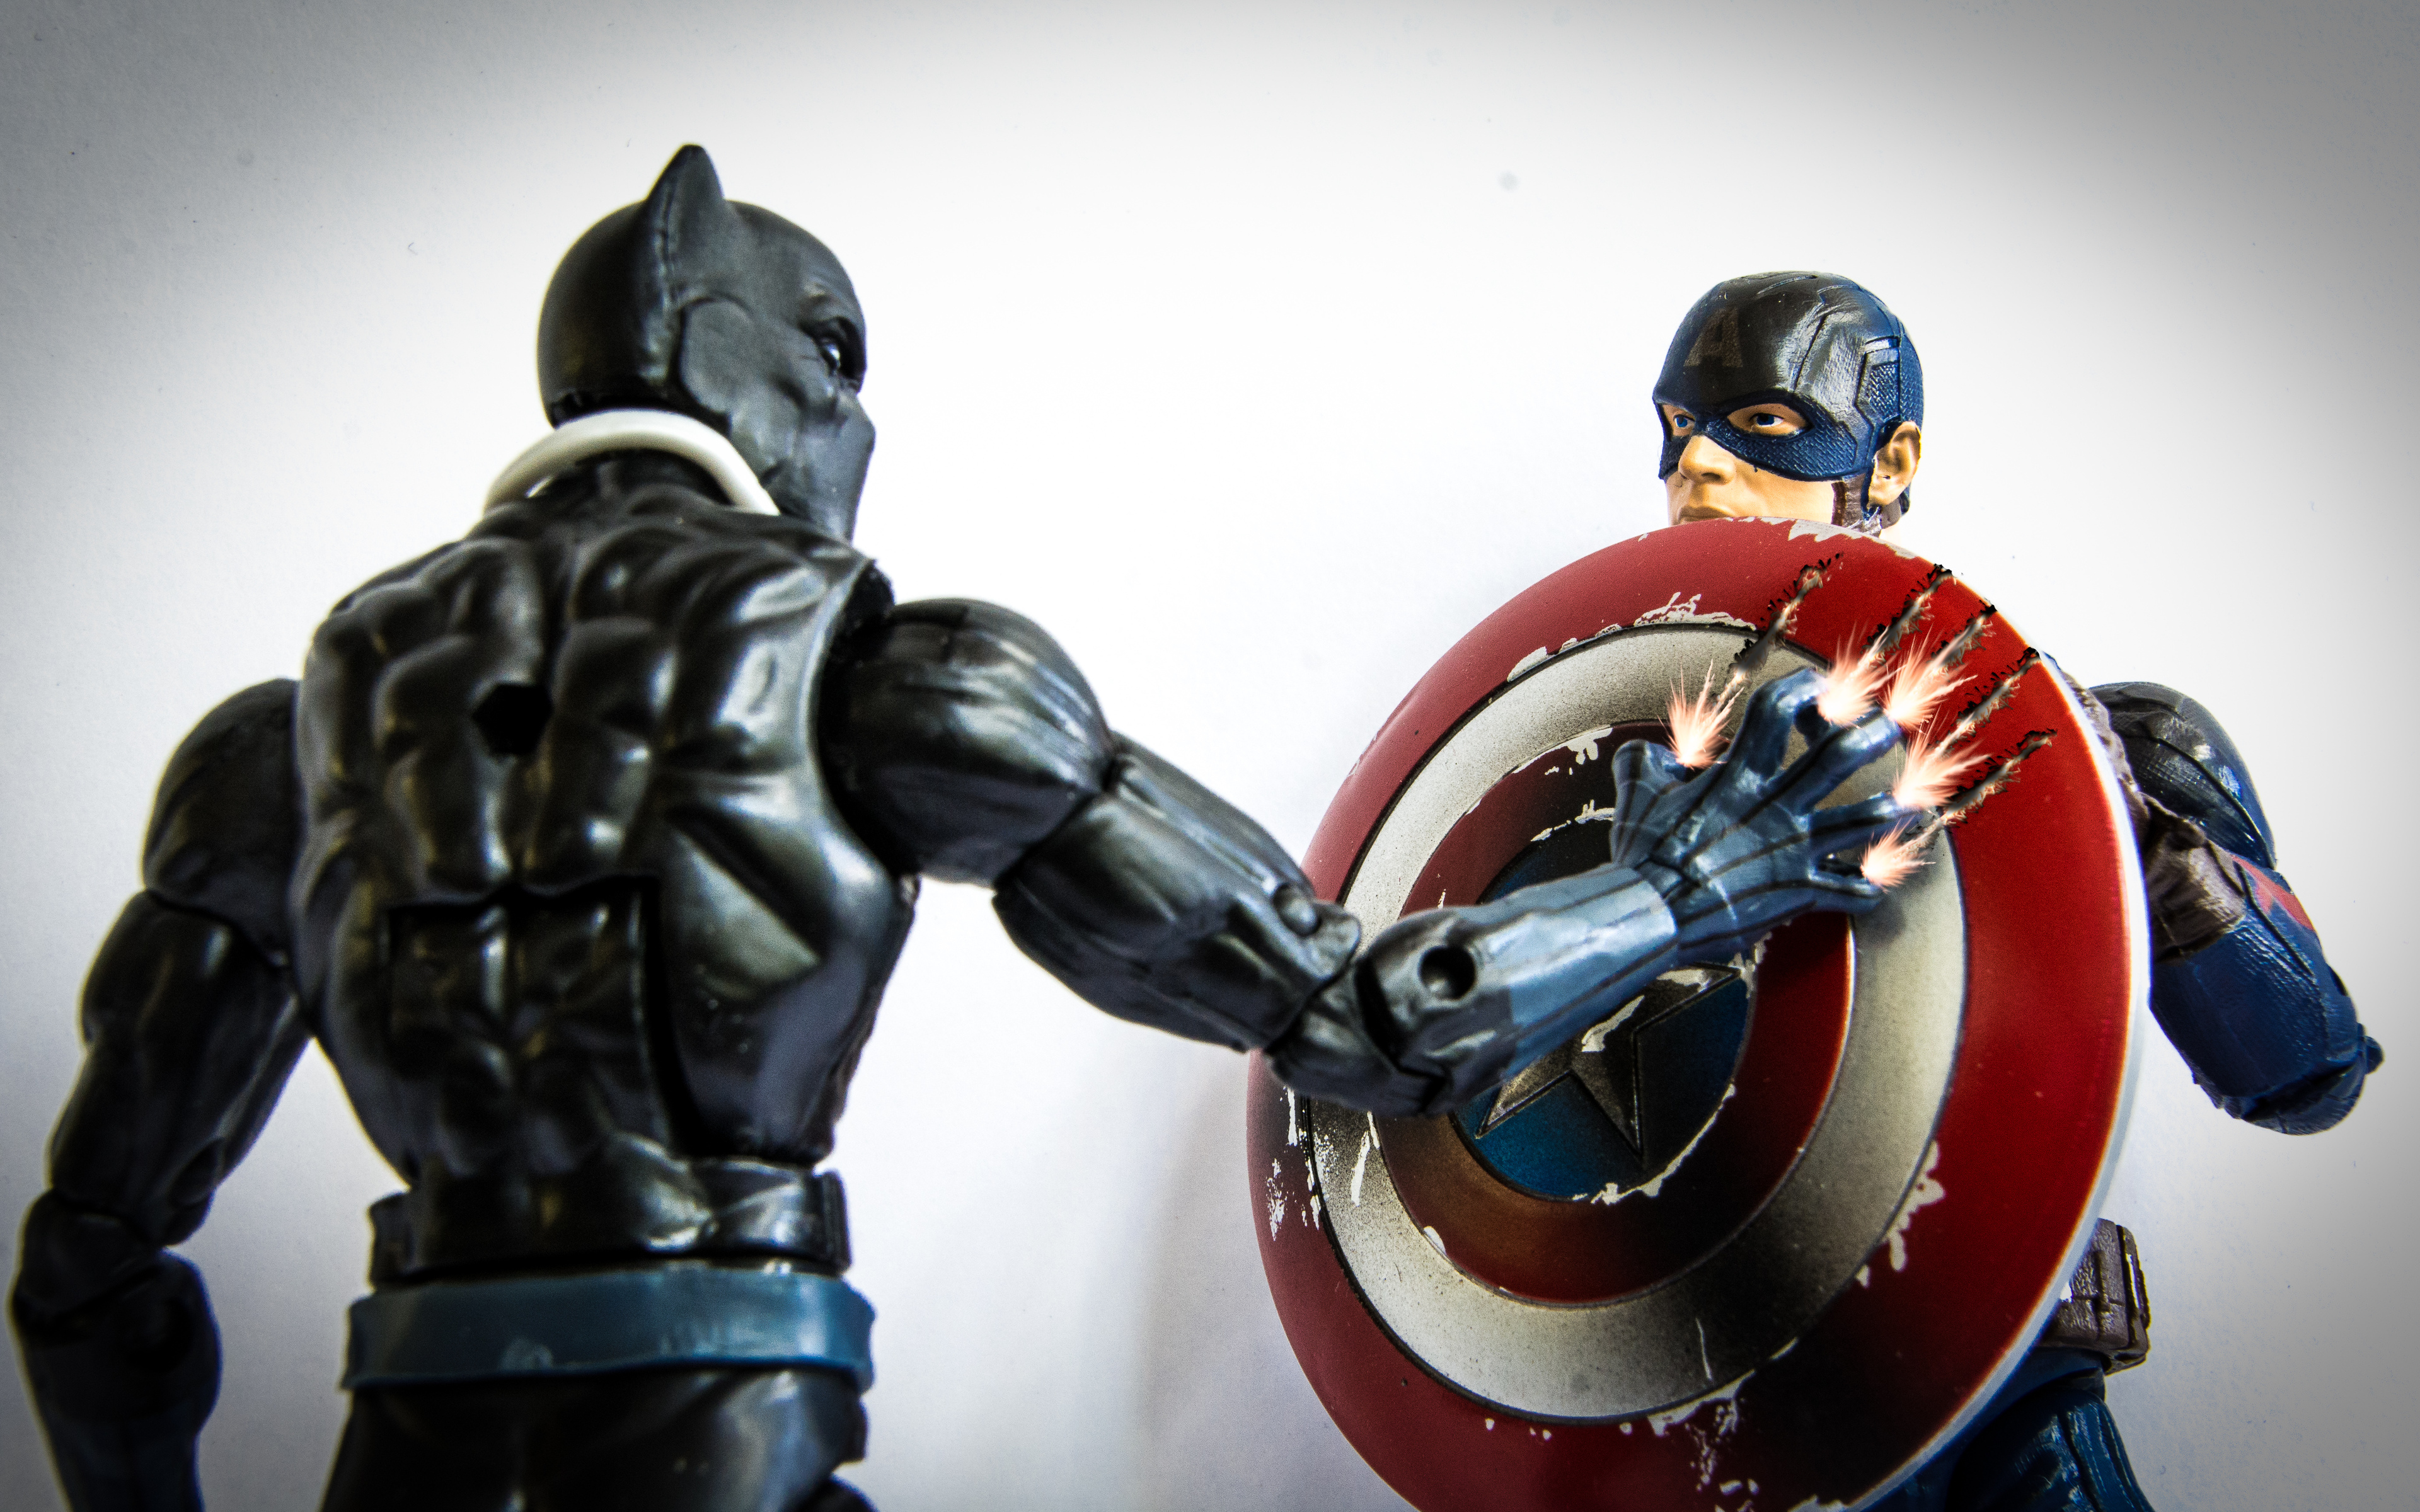 black-panther-and-captain-america-shield-nu.jpg